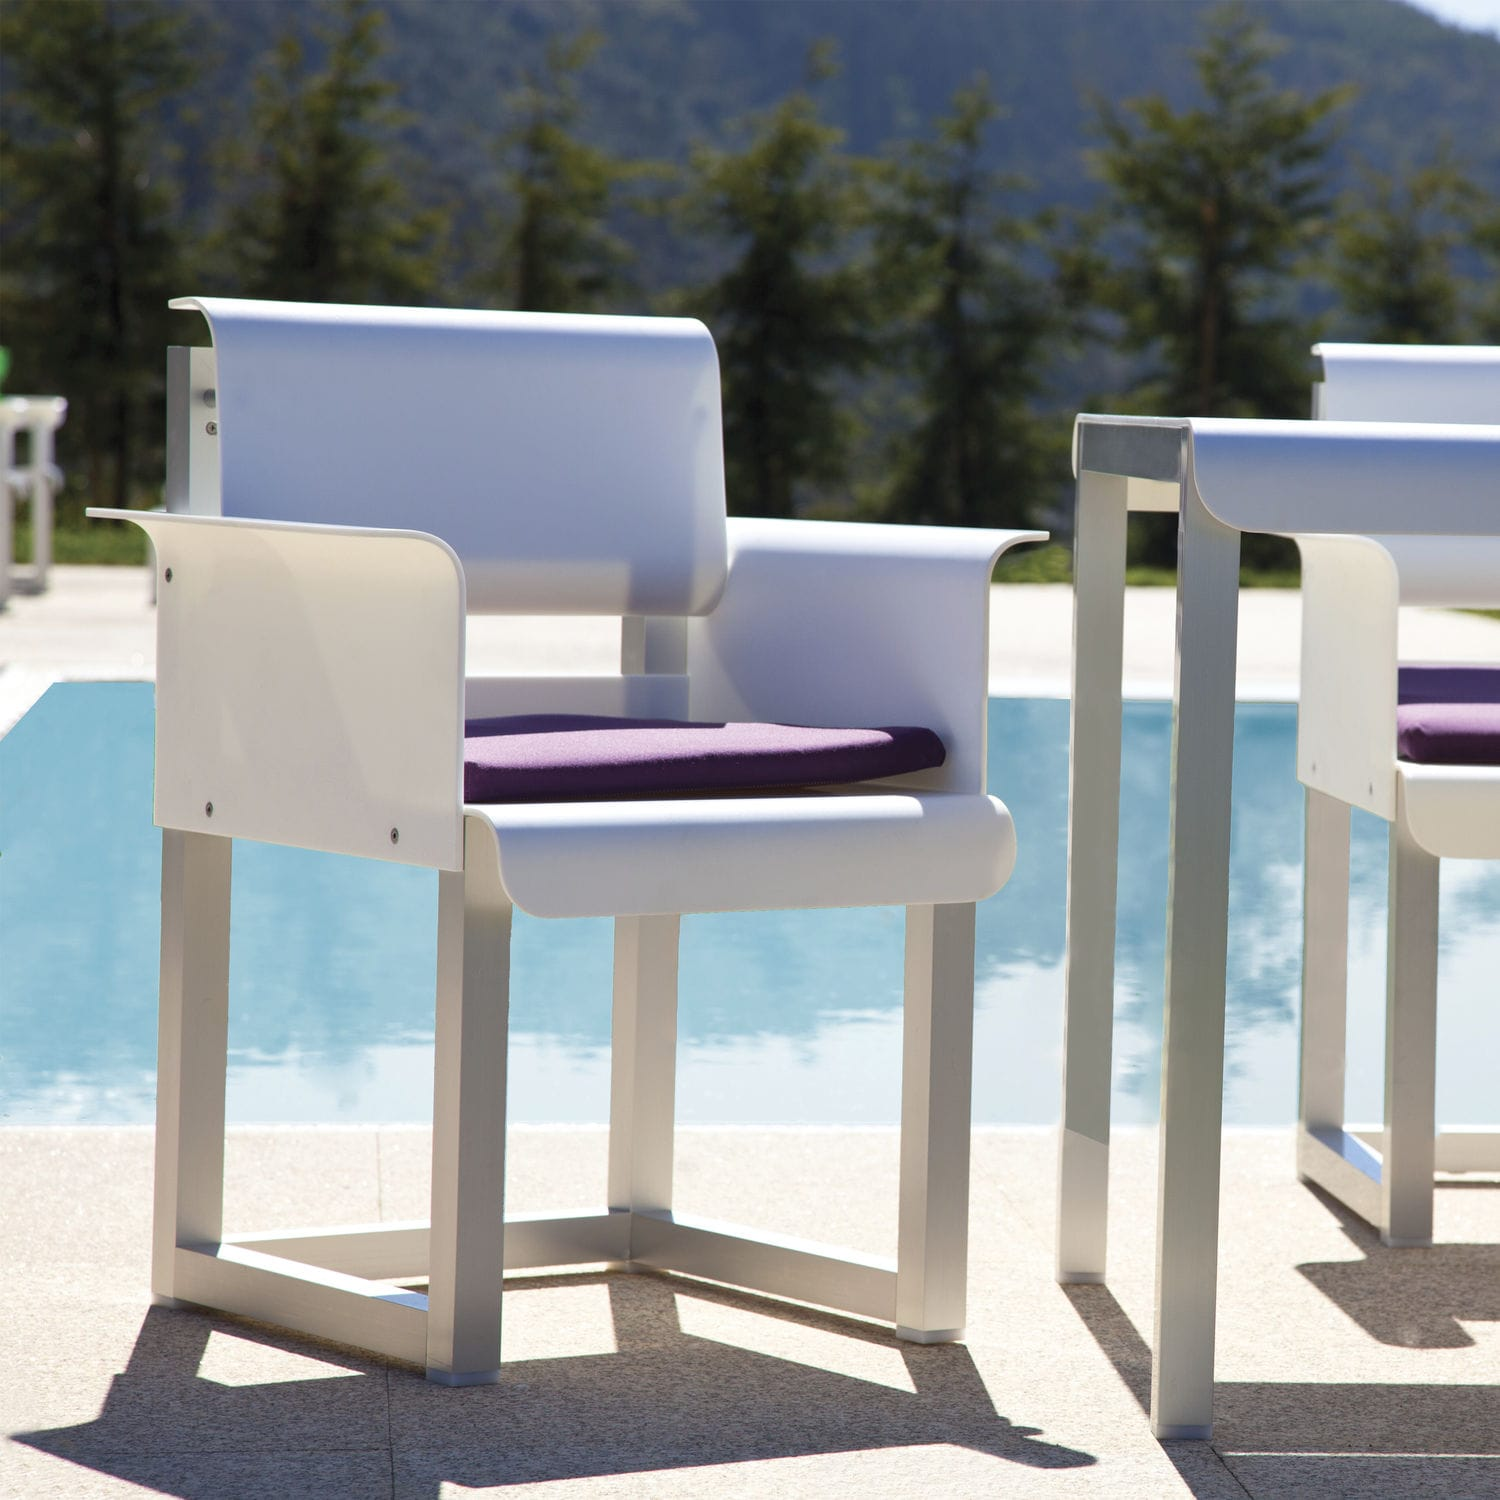 Contemporary Chair With Armrests Aluminum Outdoor West Coast By Carlos Aguiar